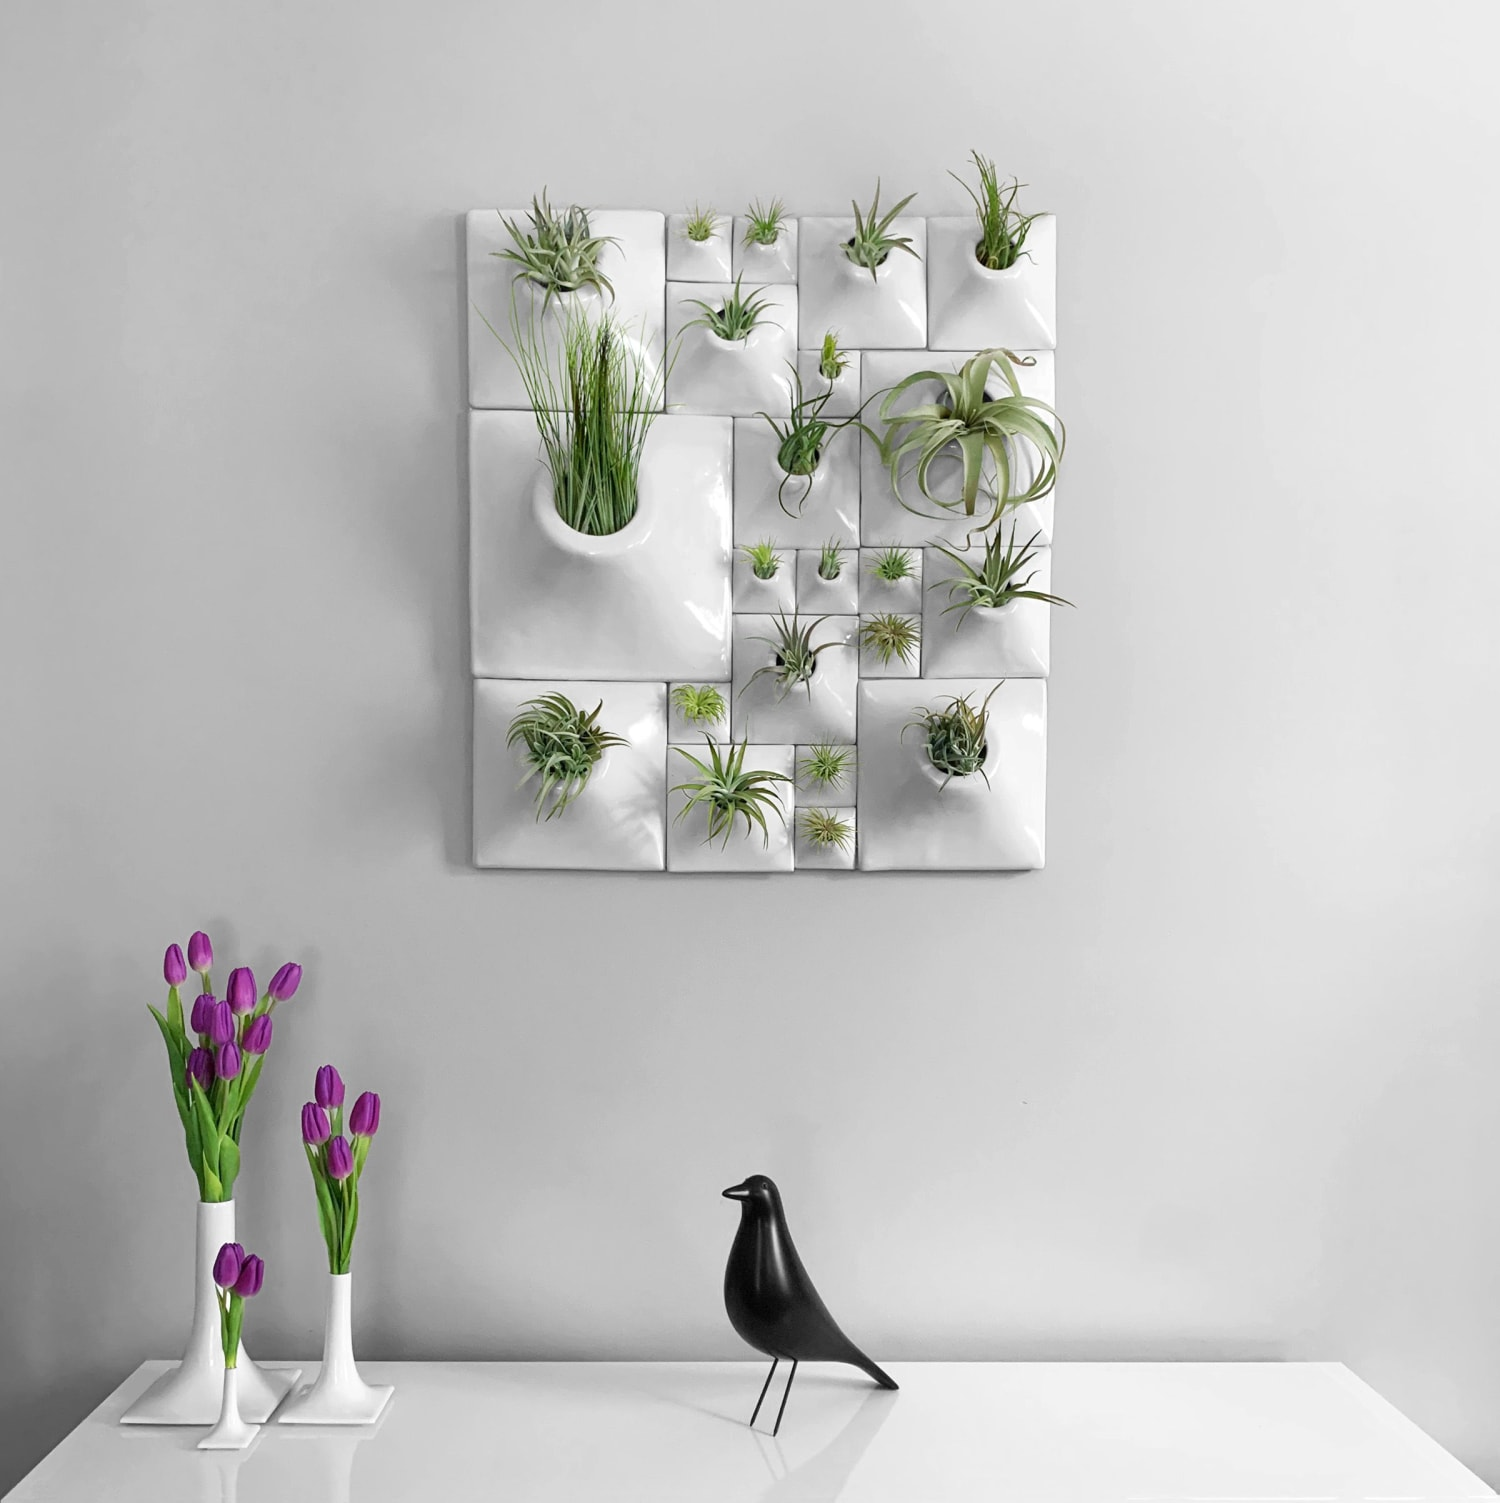 Abstract white wall planter